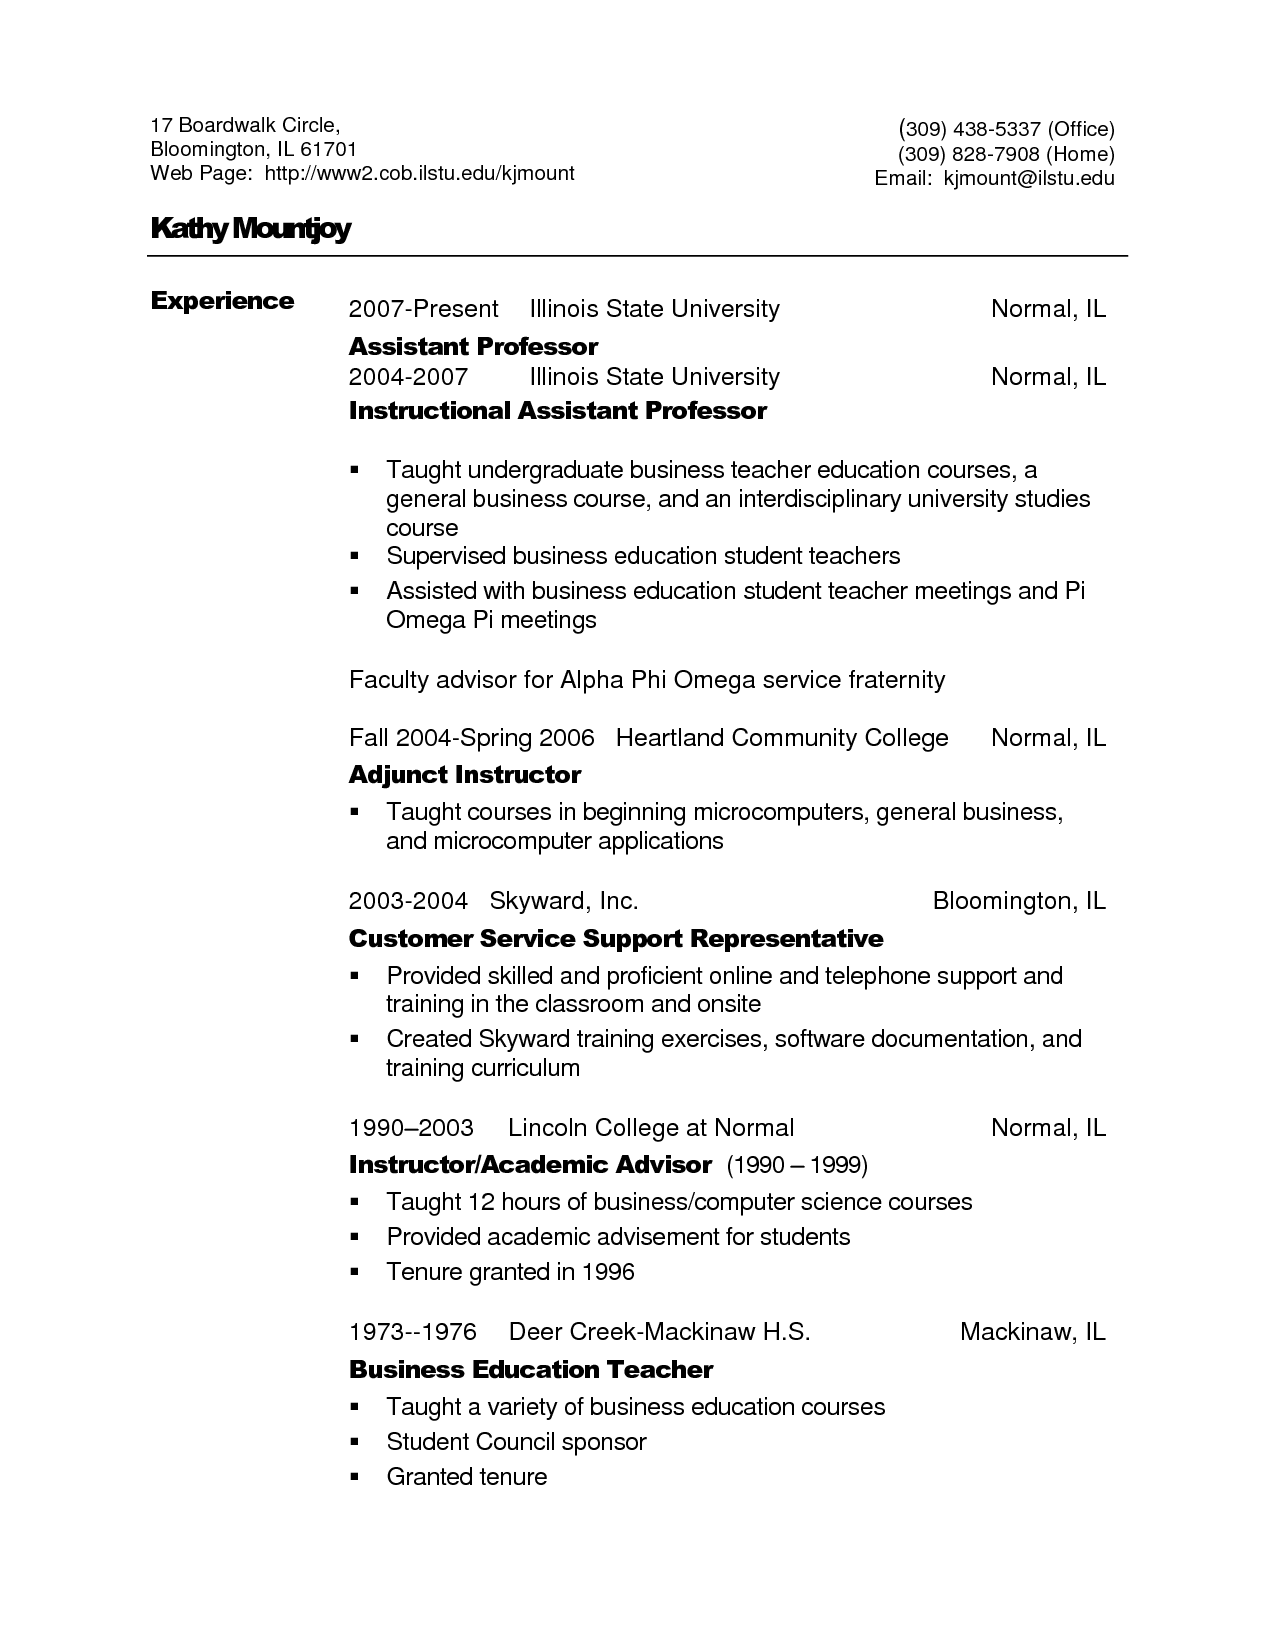 Resume Template Cover Letter English Resume Template Seeabruzzoresume Templates Cover Letter